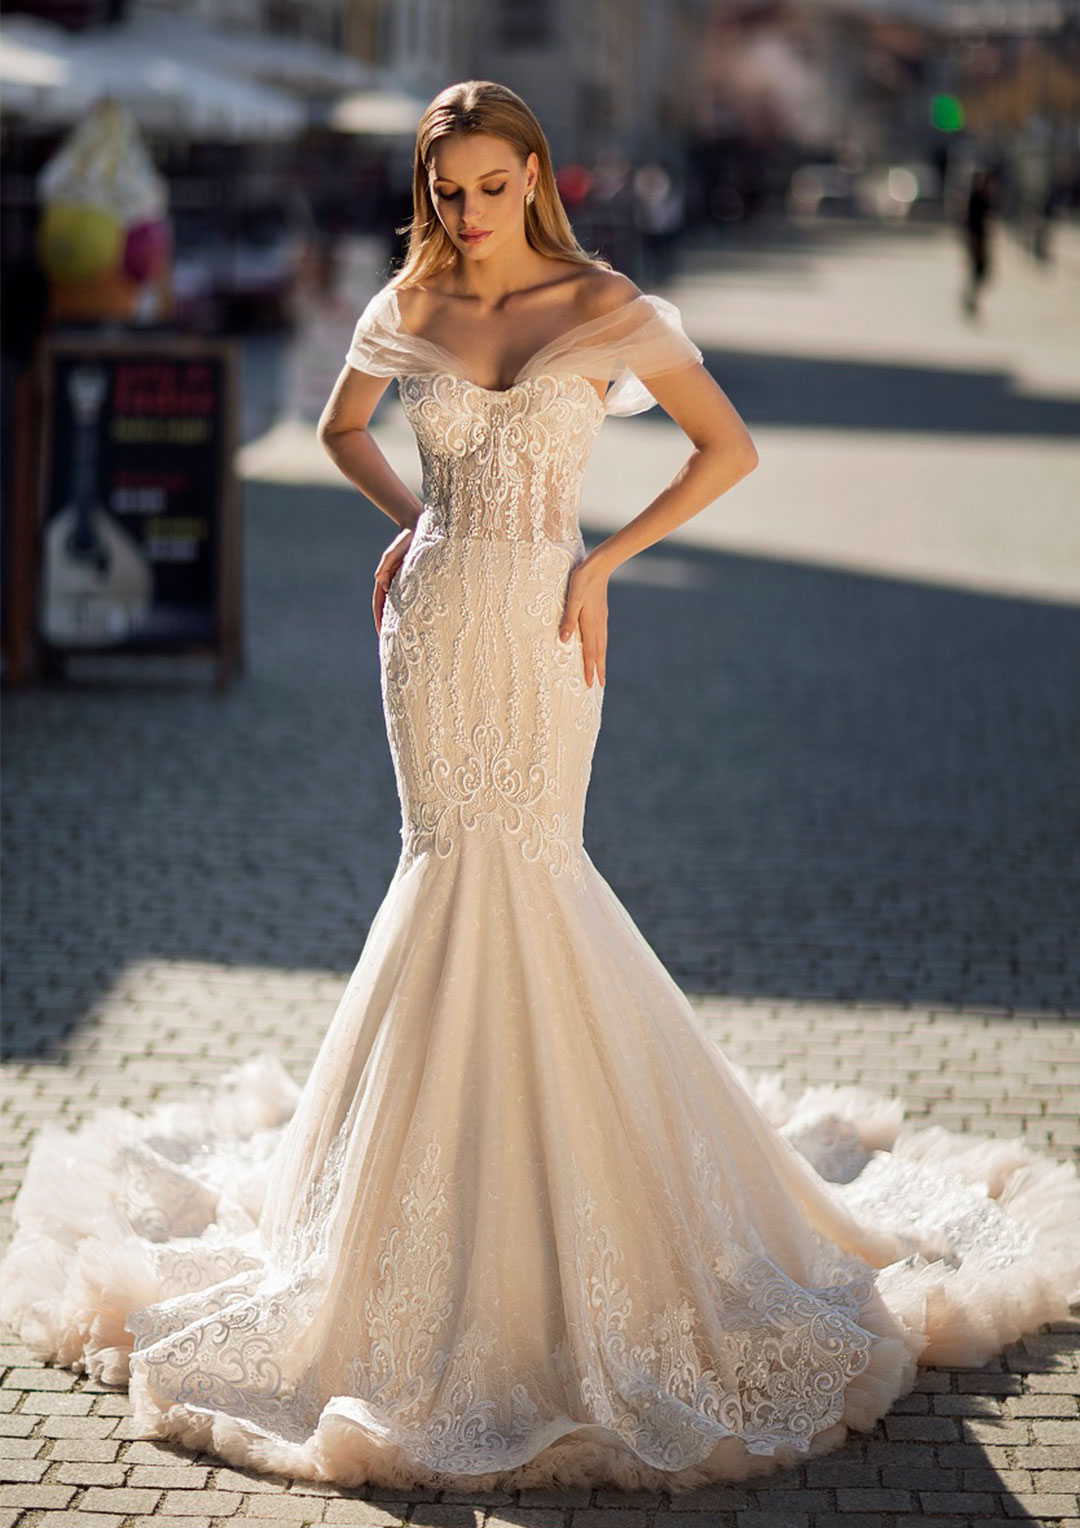 7df100128f8d Lastly there is sheath which is another very popular and chic silhouette!  This type of gown skims the body and falls right to the floor.